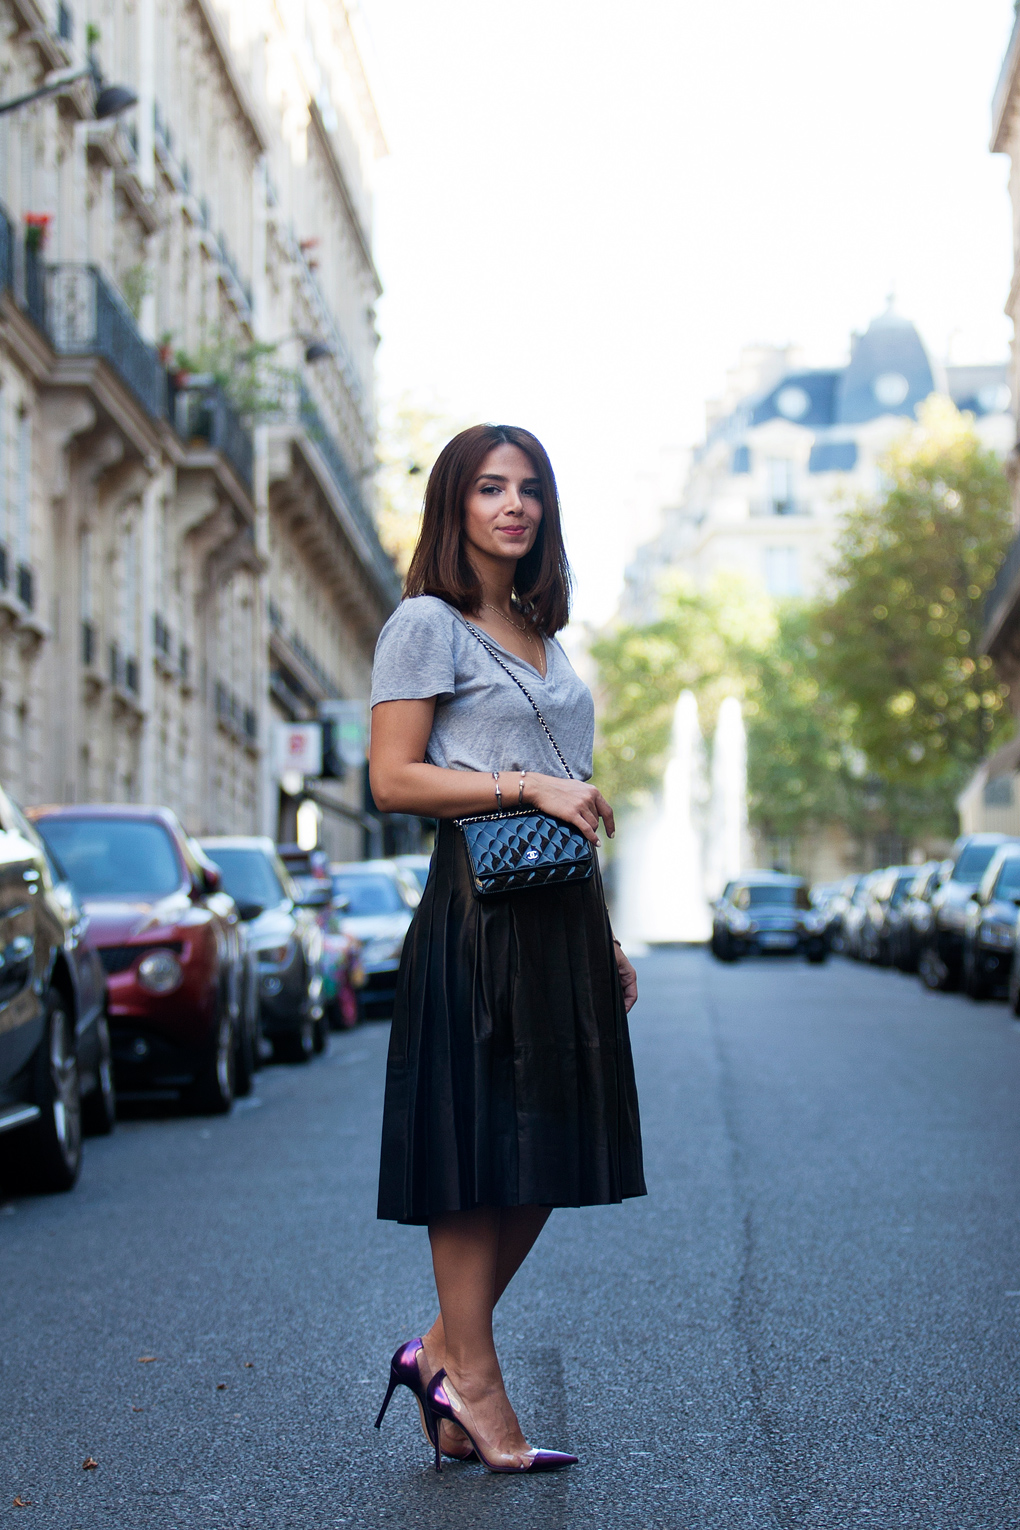 Lyla_Loves_Fashion_Leather_Skirt_Chanel_Paris_Fashion_Week_Street_Style_1529